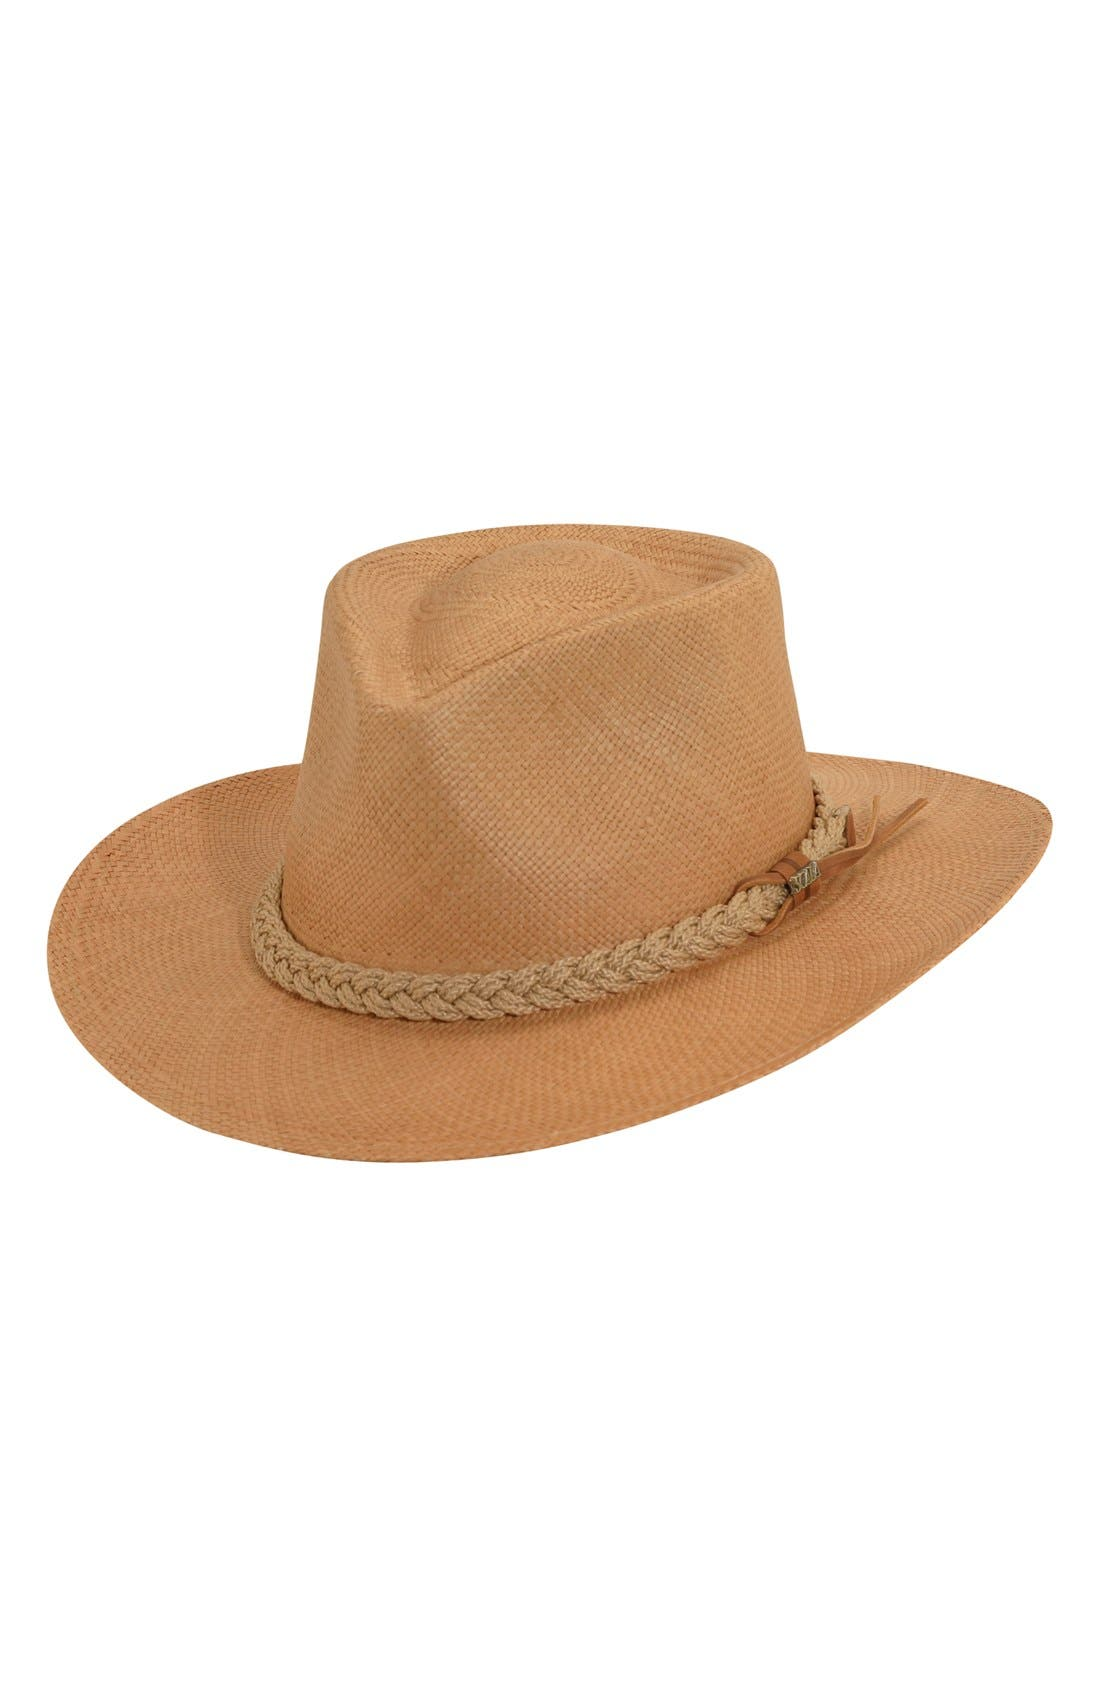 SCALA Panama Straw Outback Hat, Main, color, PUTTY